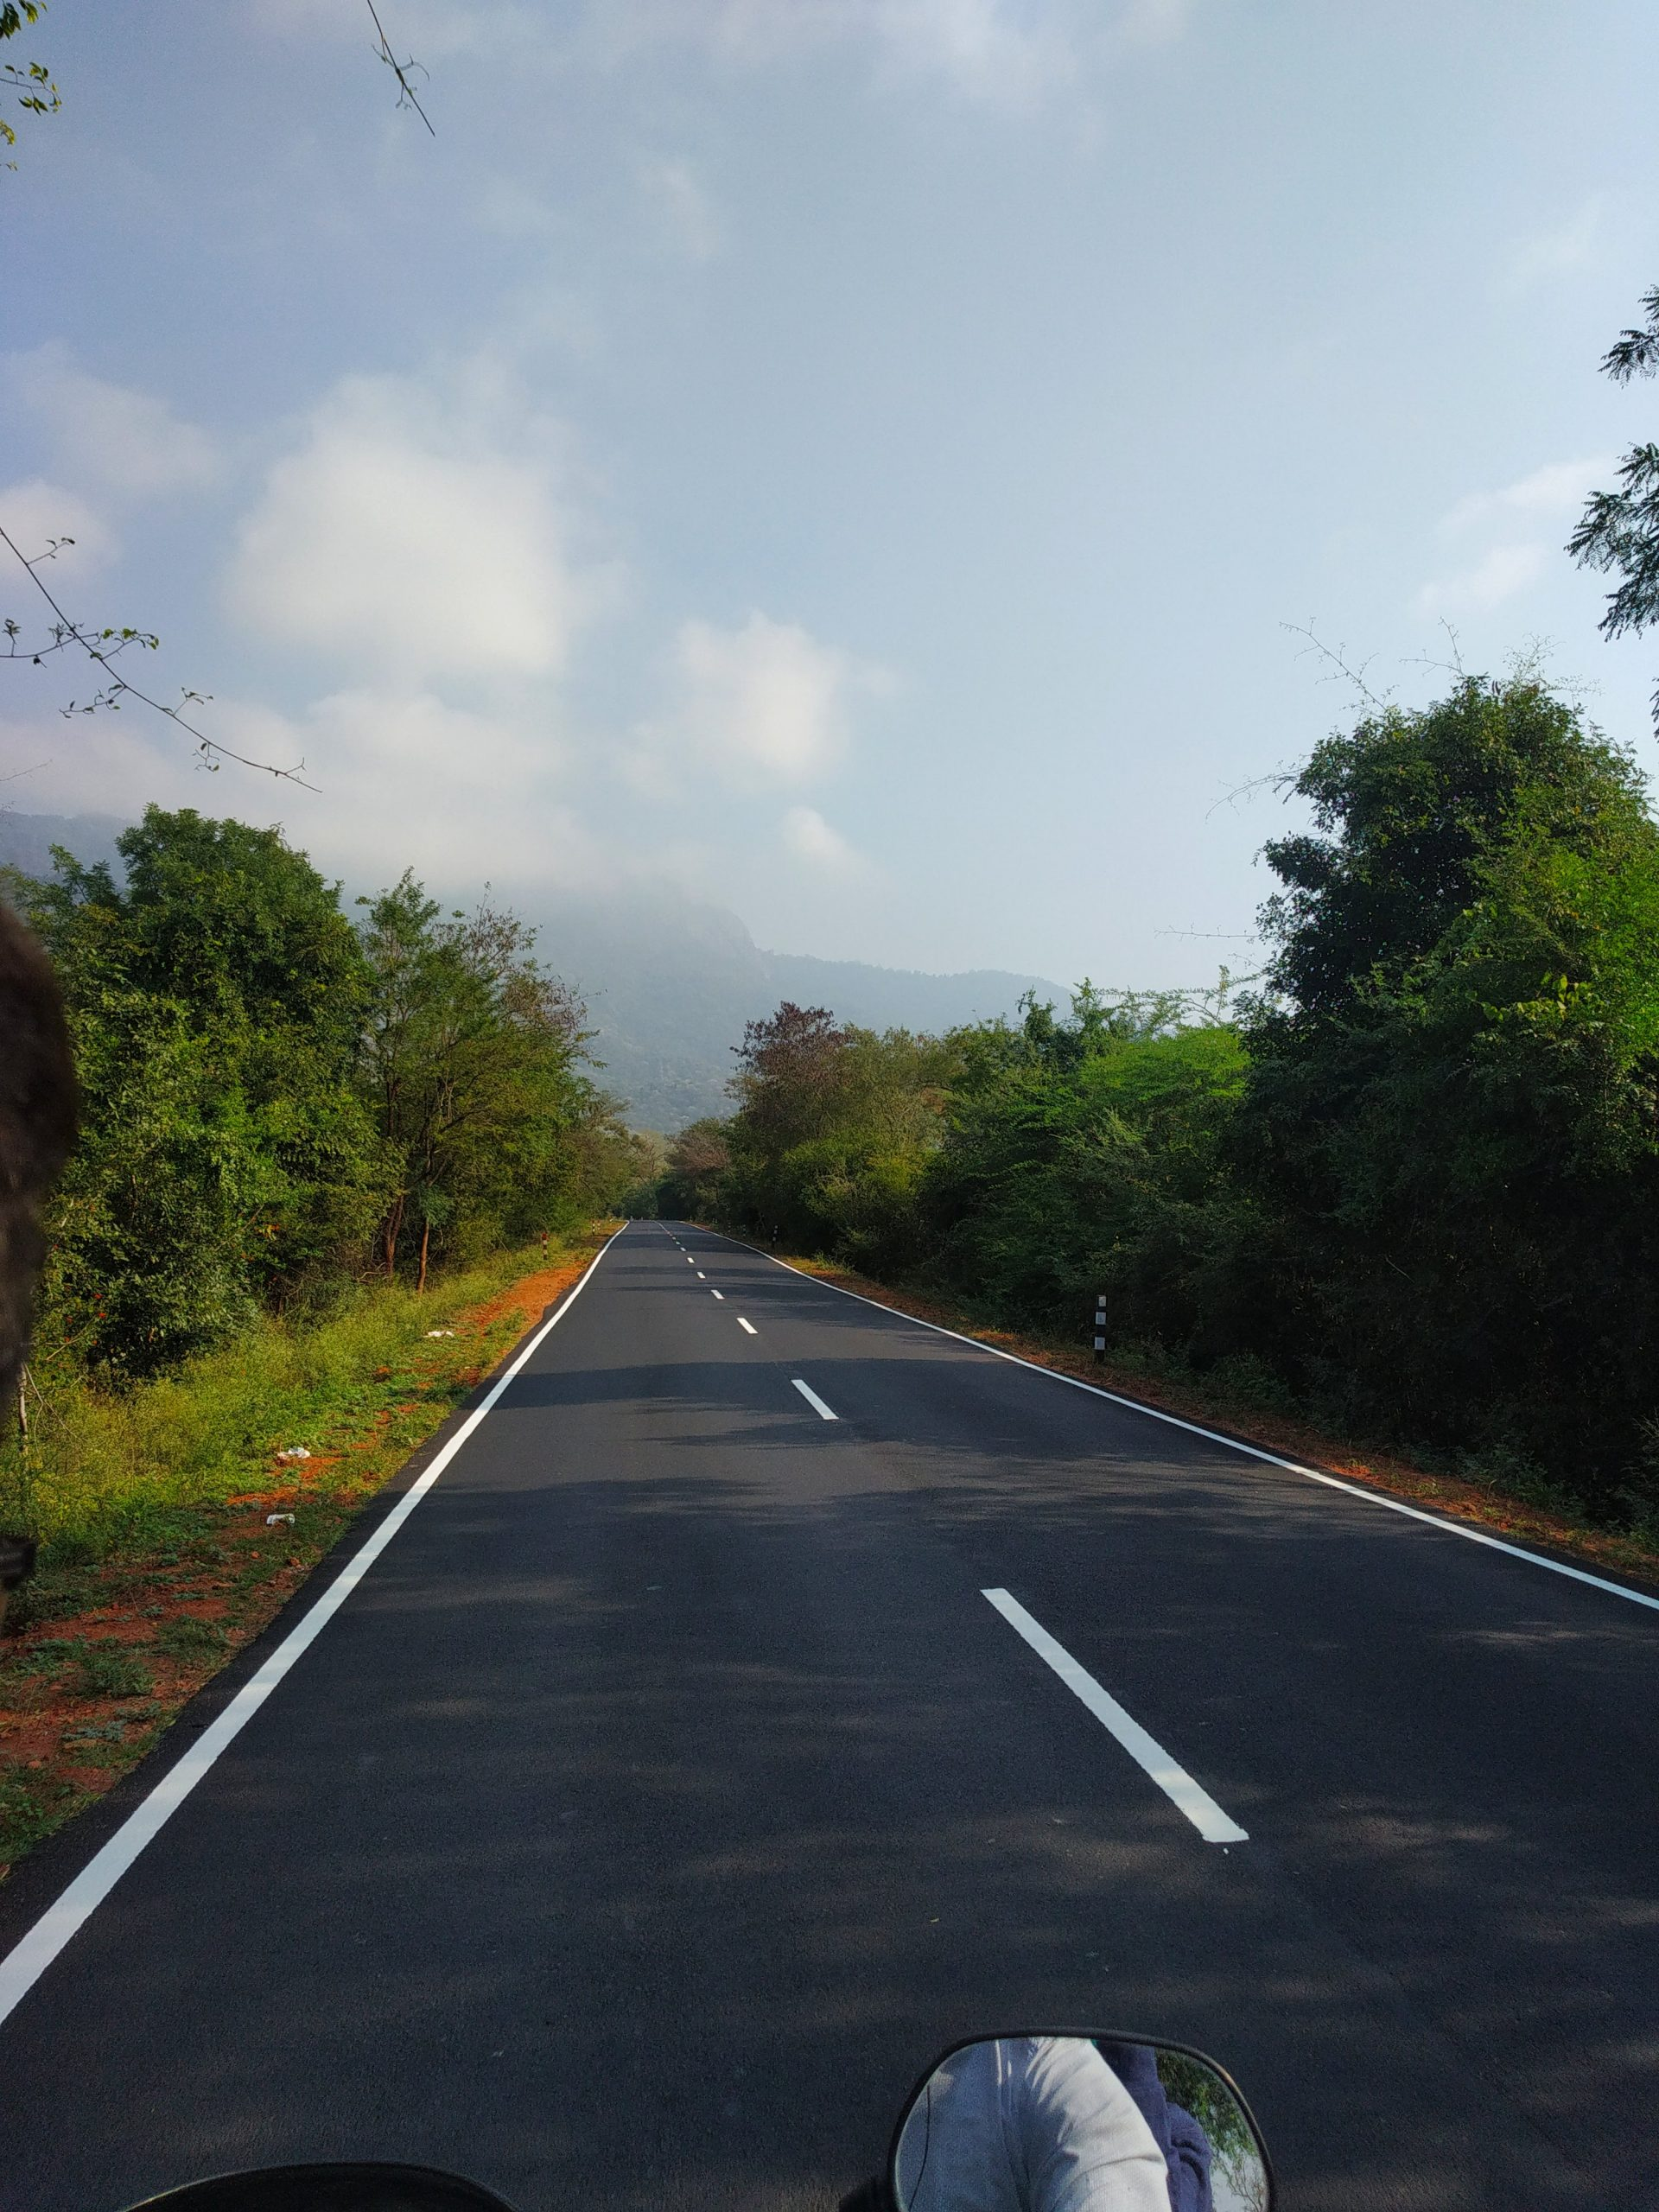 Highway in the midst of forest